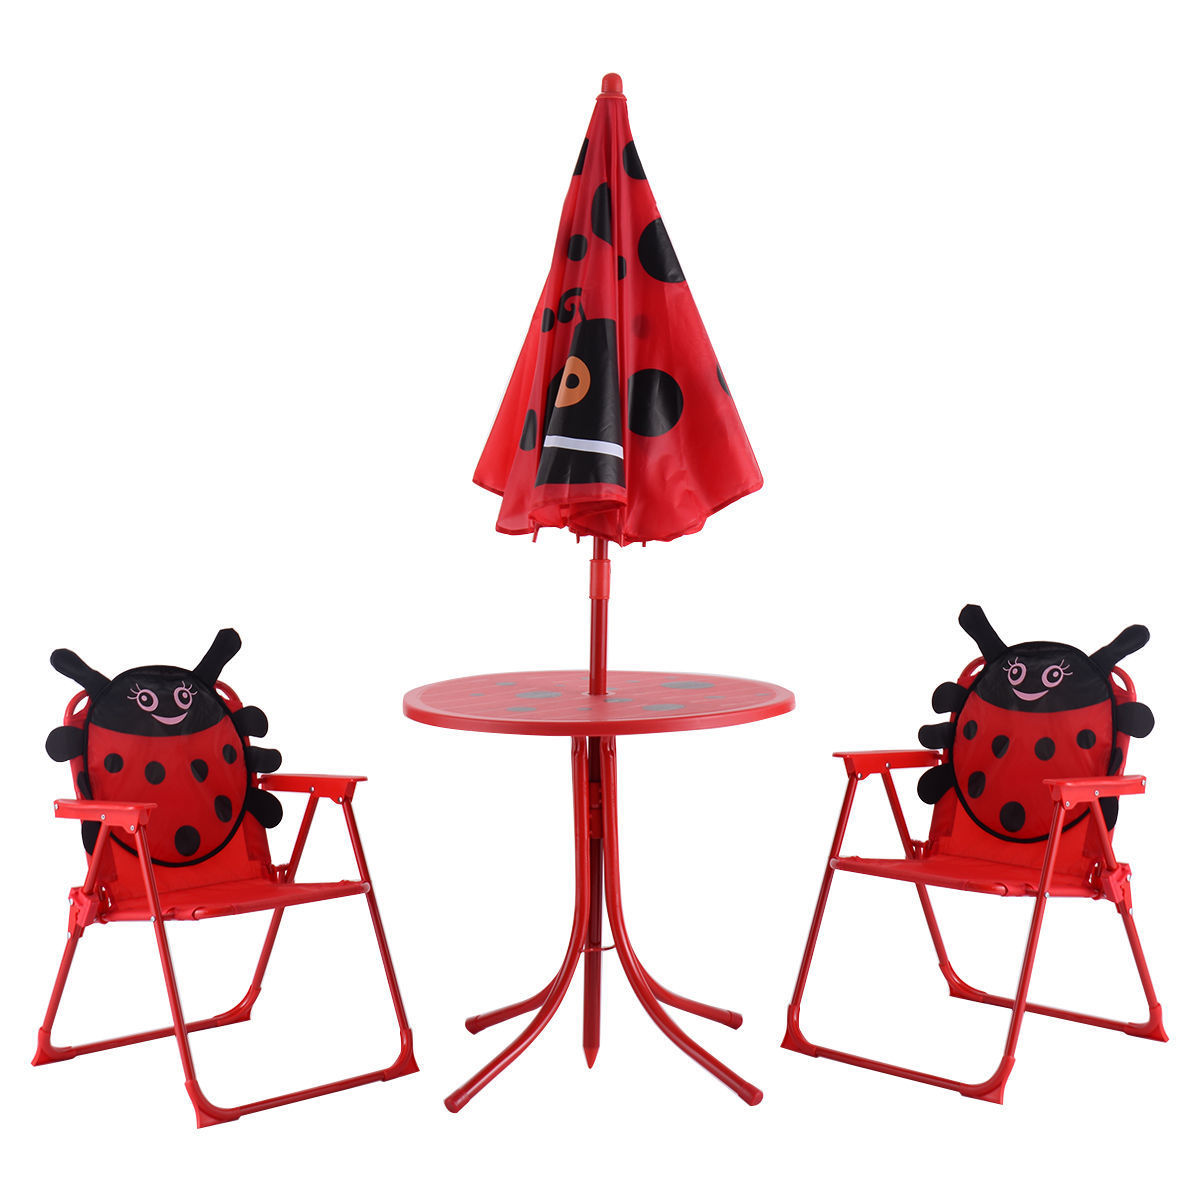 GHP Red Metal & Fabric Oxford Cloth Round Table w 2 Chairs & Beetle Printed Umbrella